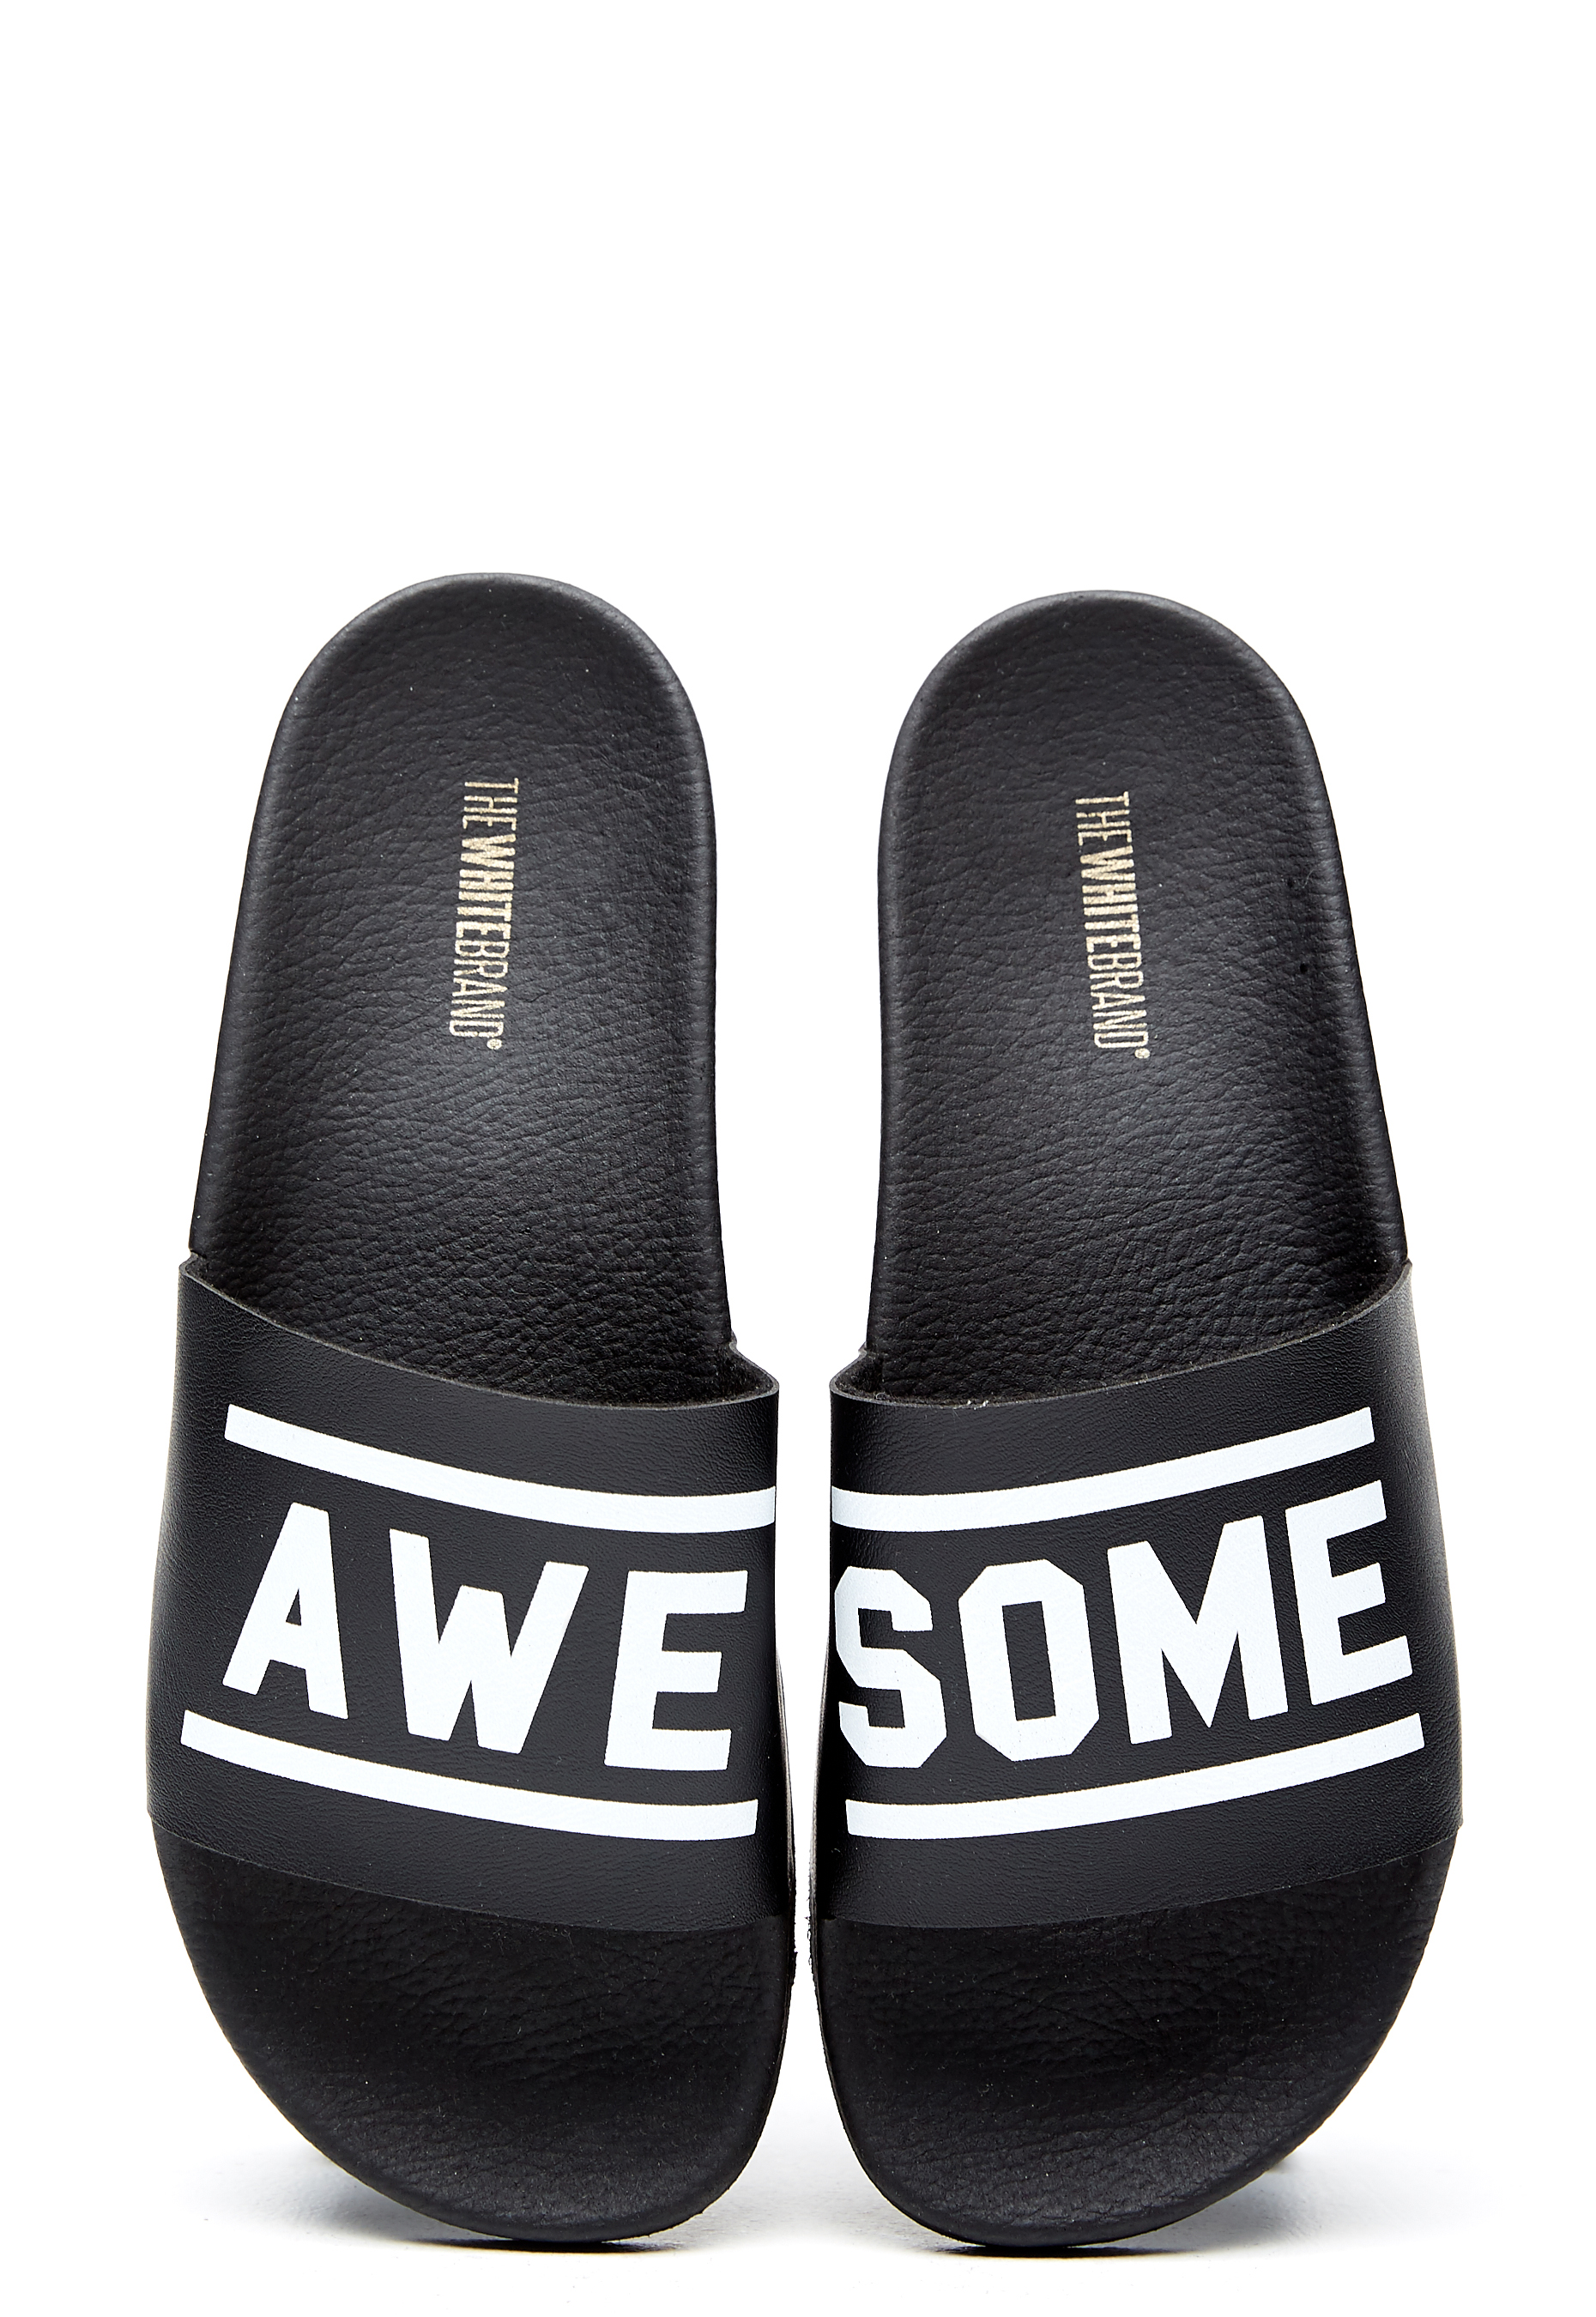 Black The White Brand shoe AWESOME dtfpb8r24